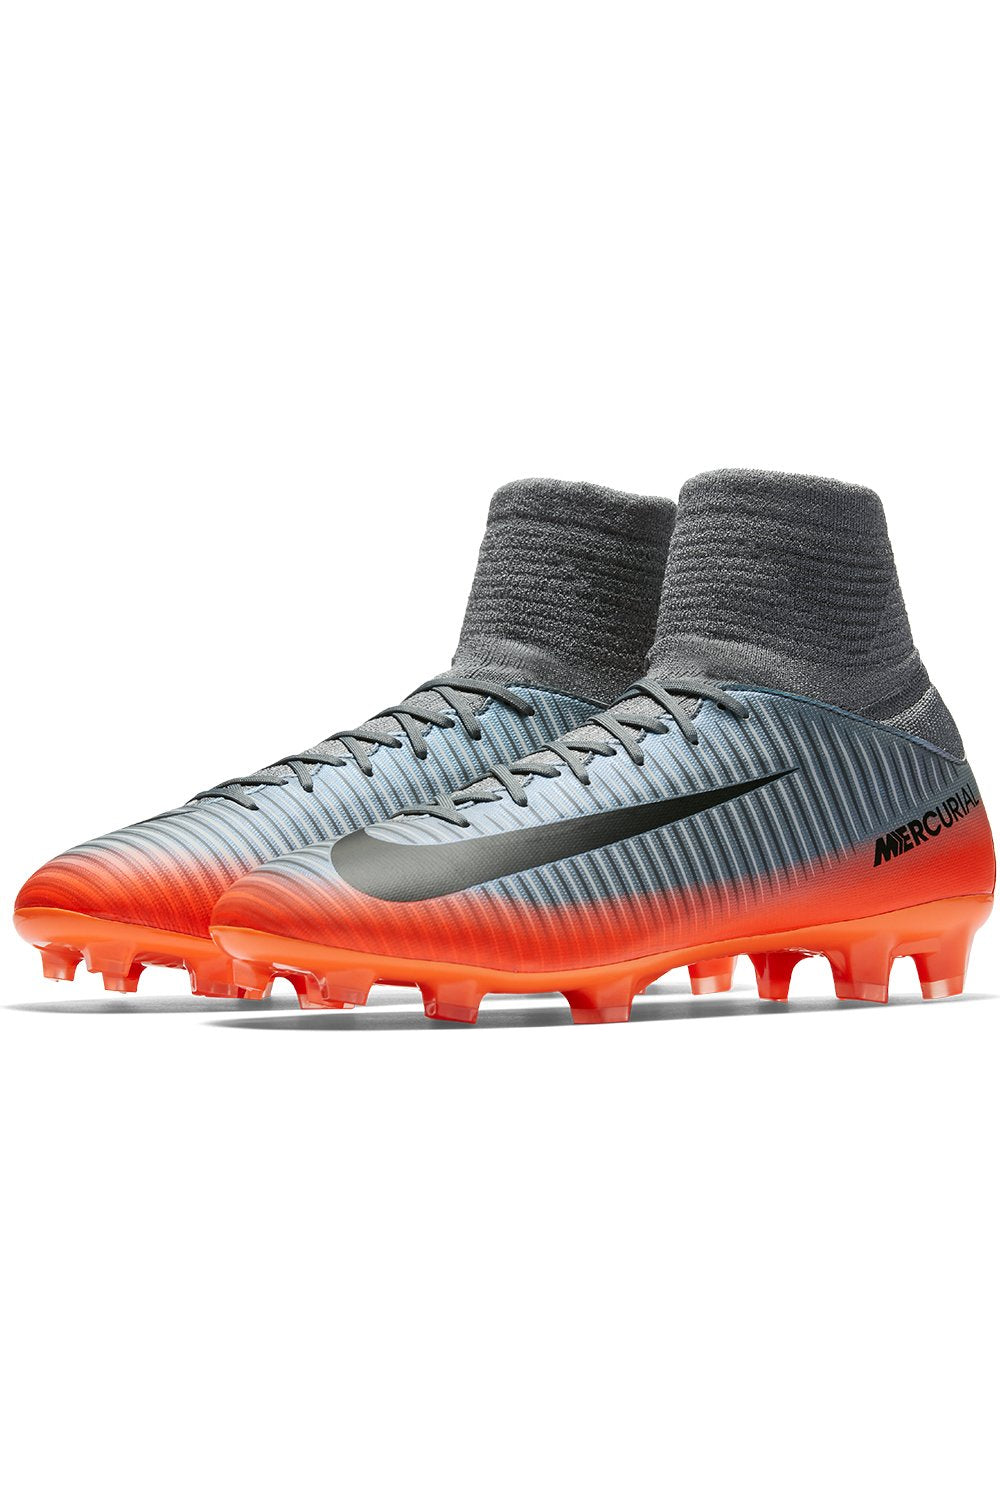 Youth Mercurial Superfly V CR7 FG by Nike at Gazelle Sports ... f2e1dfc036